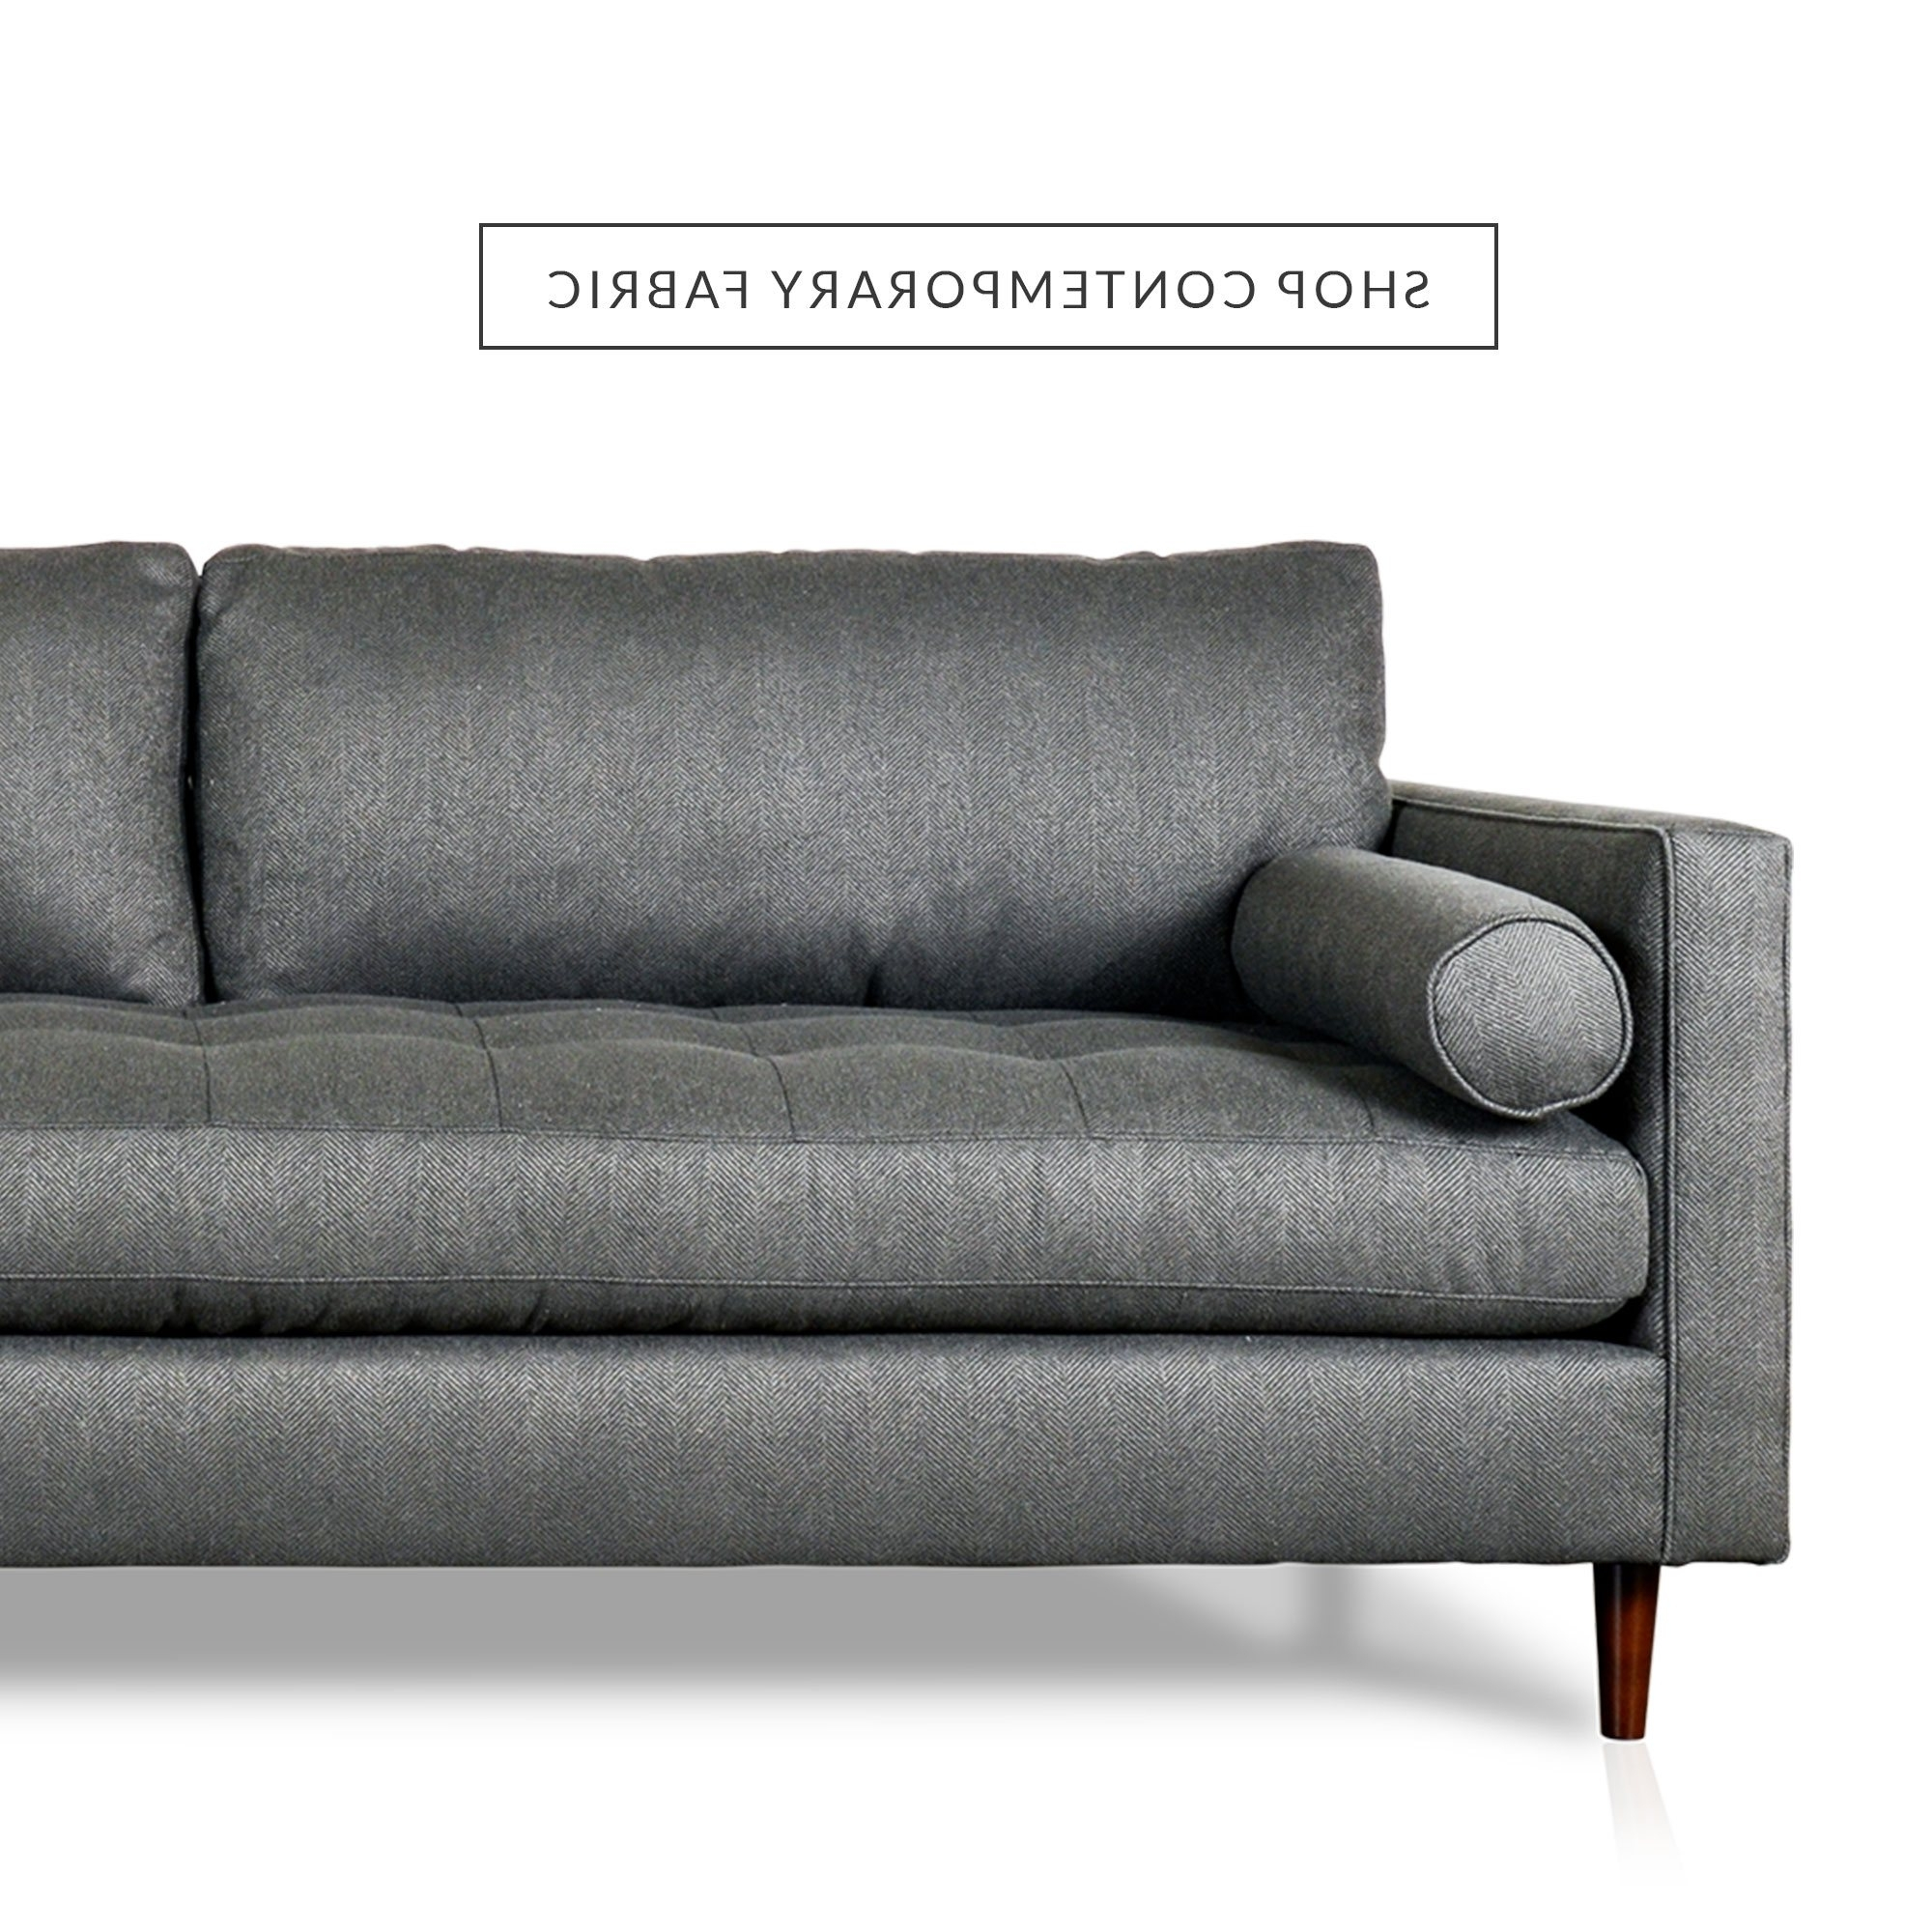 Newest Chesterfield Sofas, Modern Furniture Made In Usa (View 10 of 20)